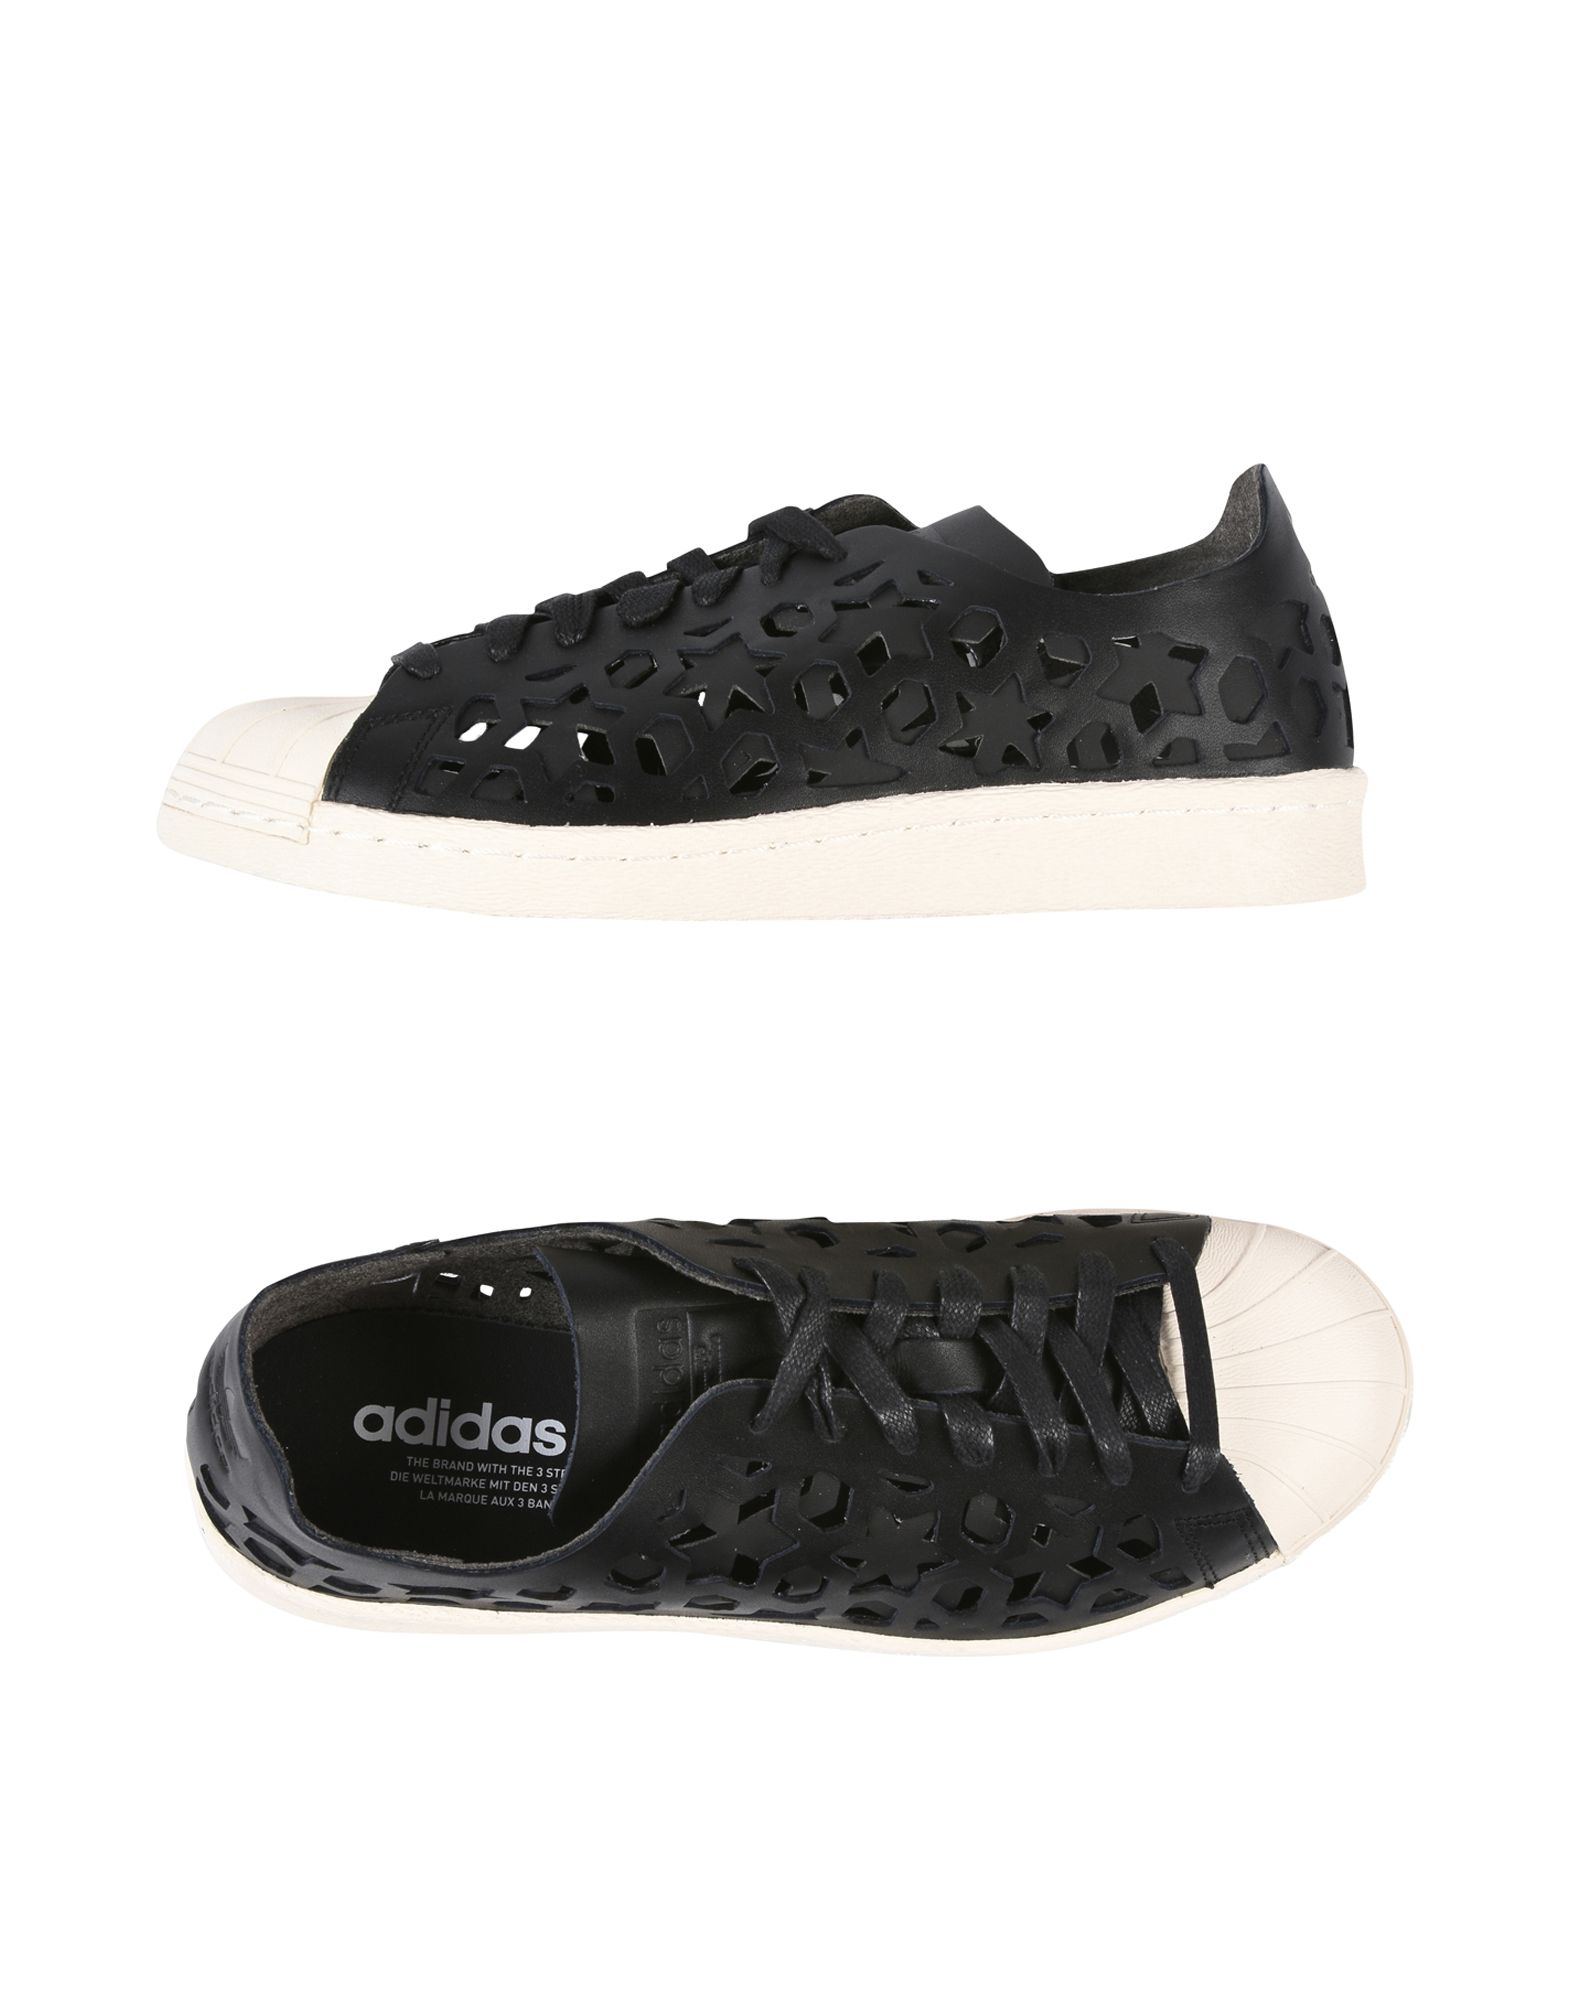 Adidas Originals - Superstar 80S Cut Ou - Originals Sneakers - Women Adidas Originals Sneakers online on  United Kingdom - 11306846OA 81b6c6